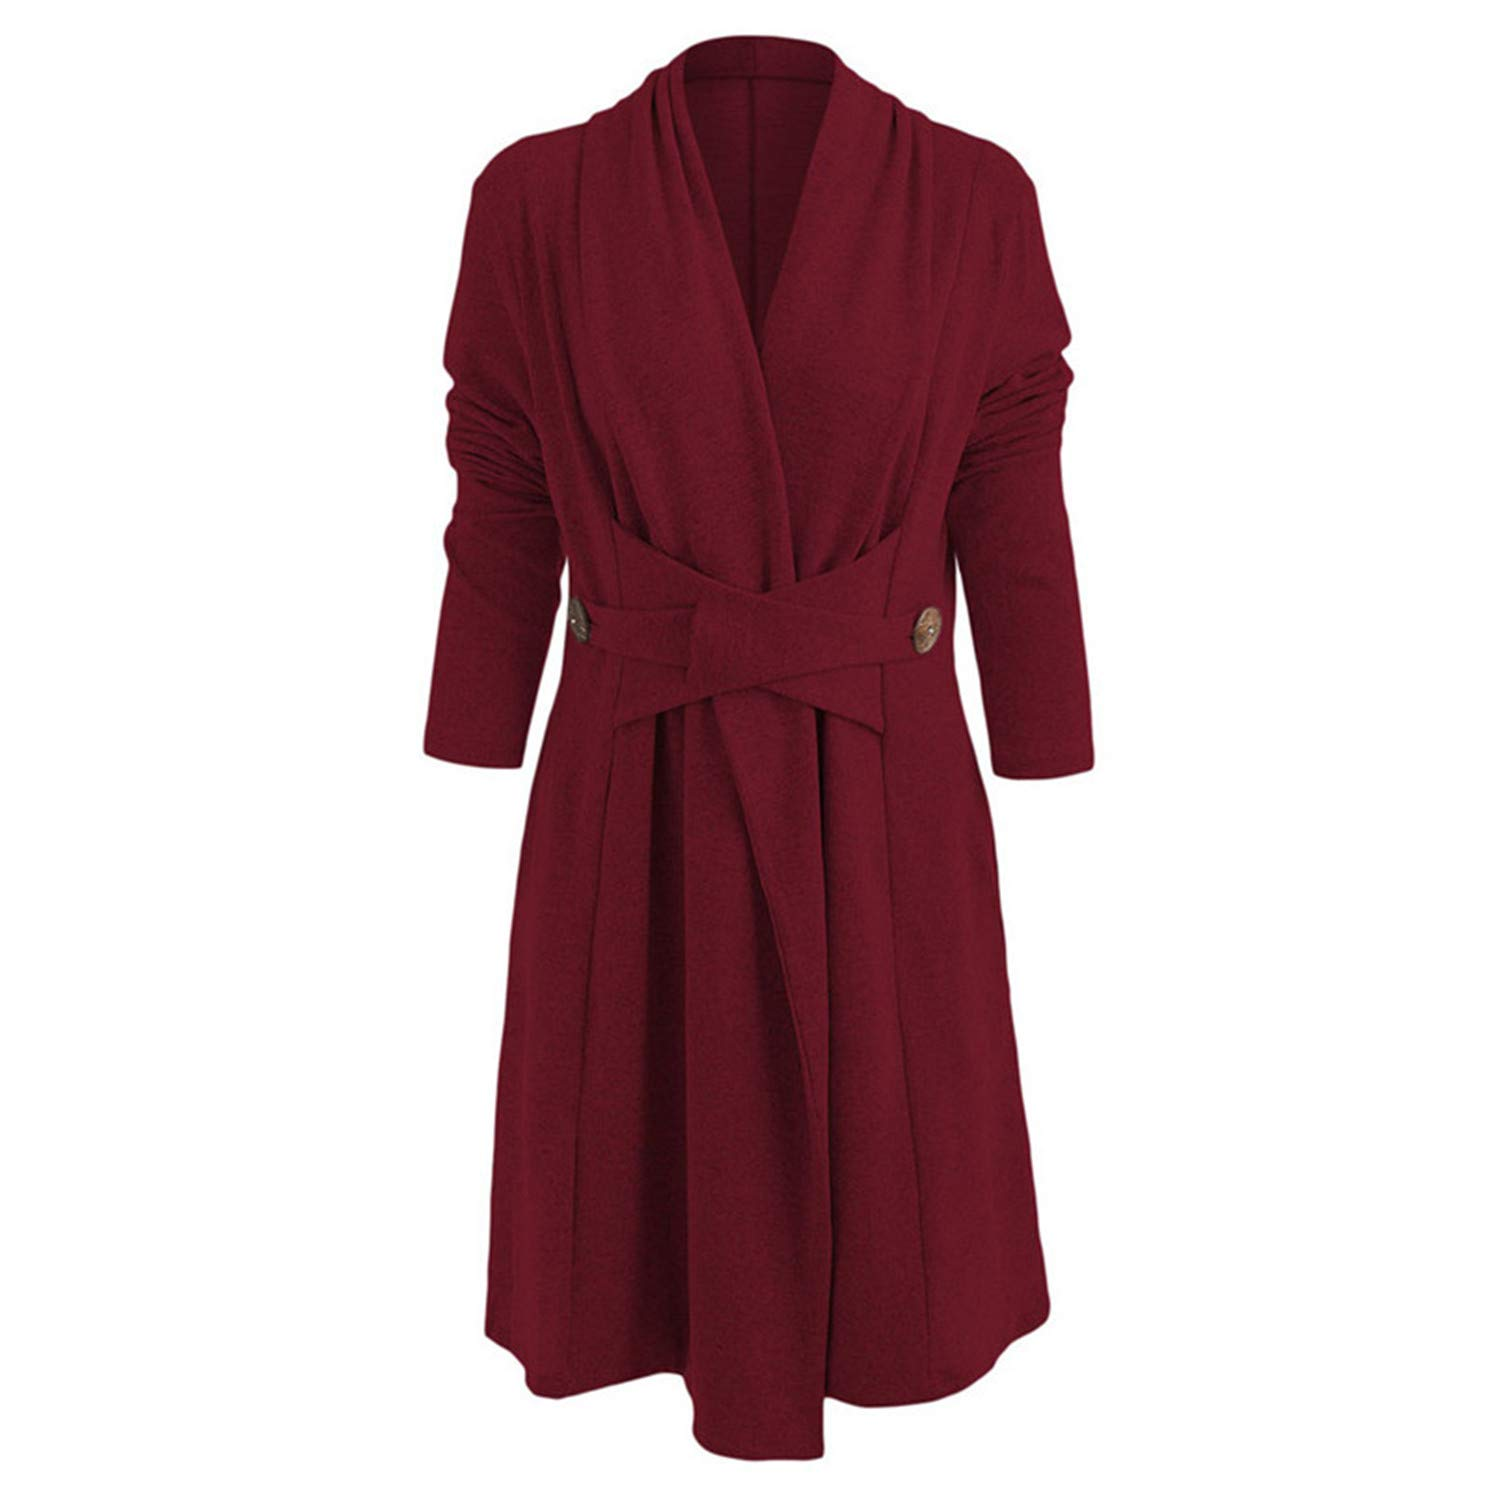 Amazon.com: Carol Chambers Open Stitch Clothes Open Front Button Long Duster Cardigan Imitation Coat Spring Autumn Ladies Coats: Clothing